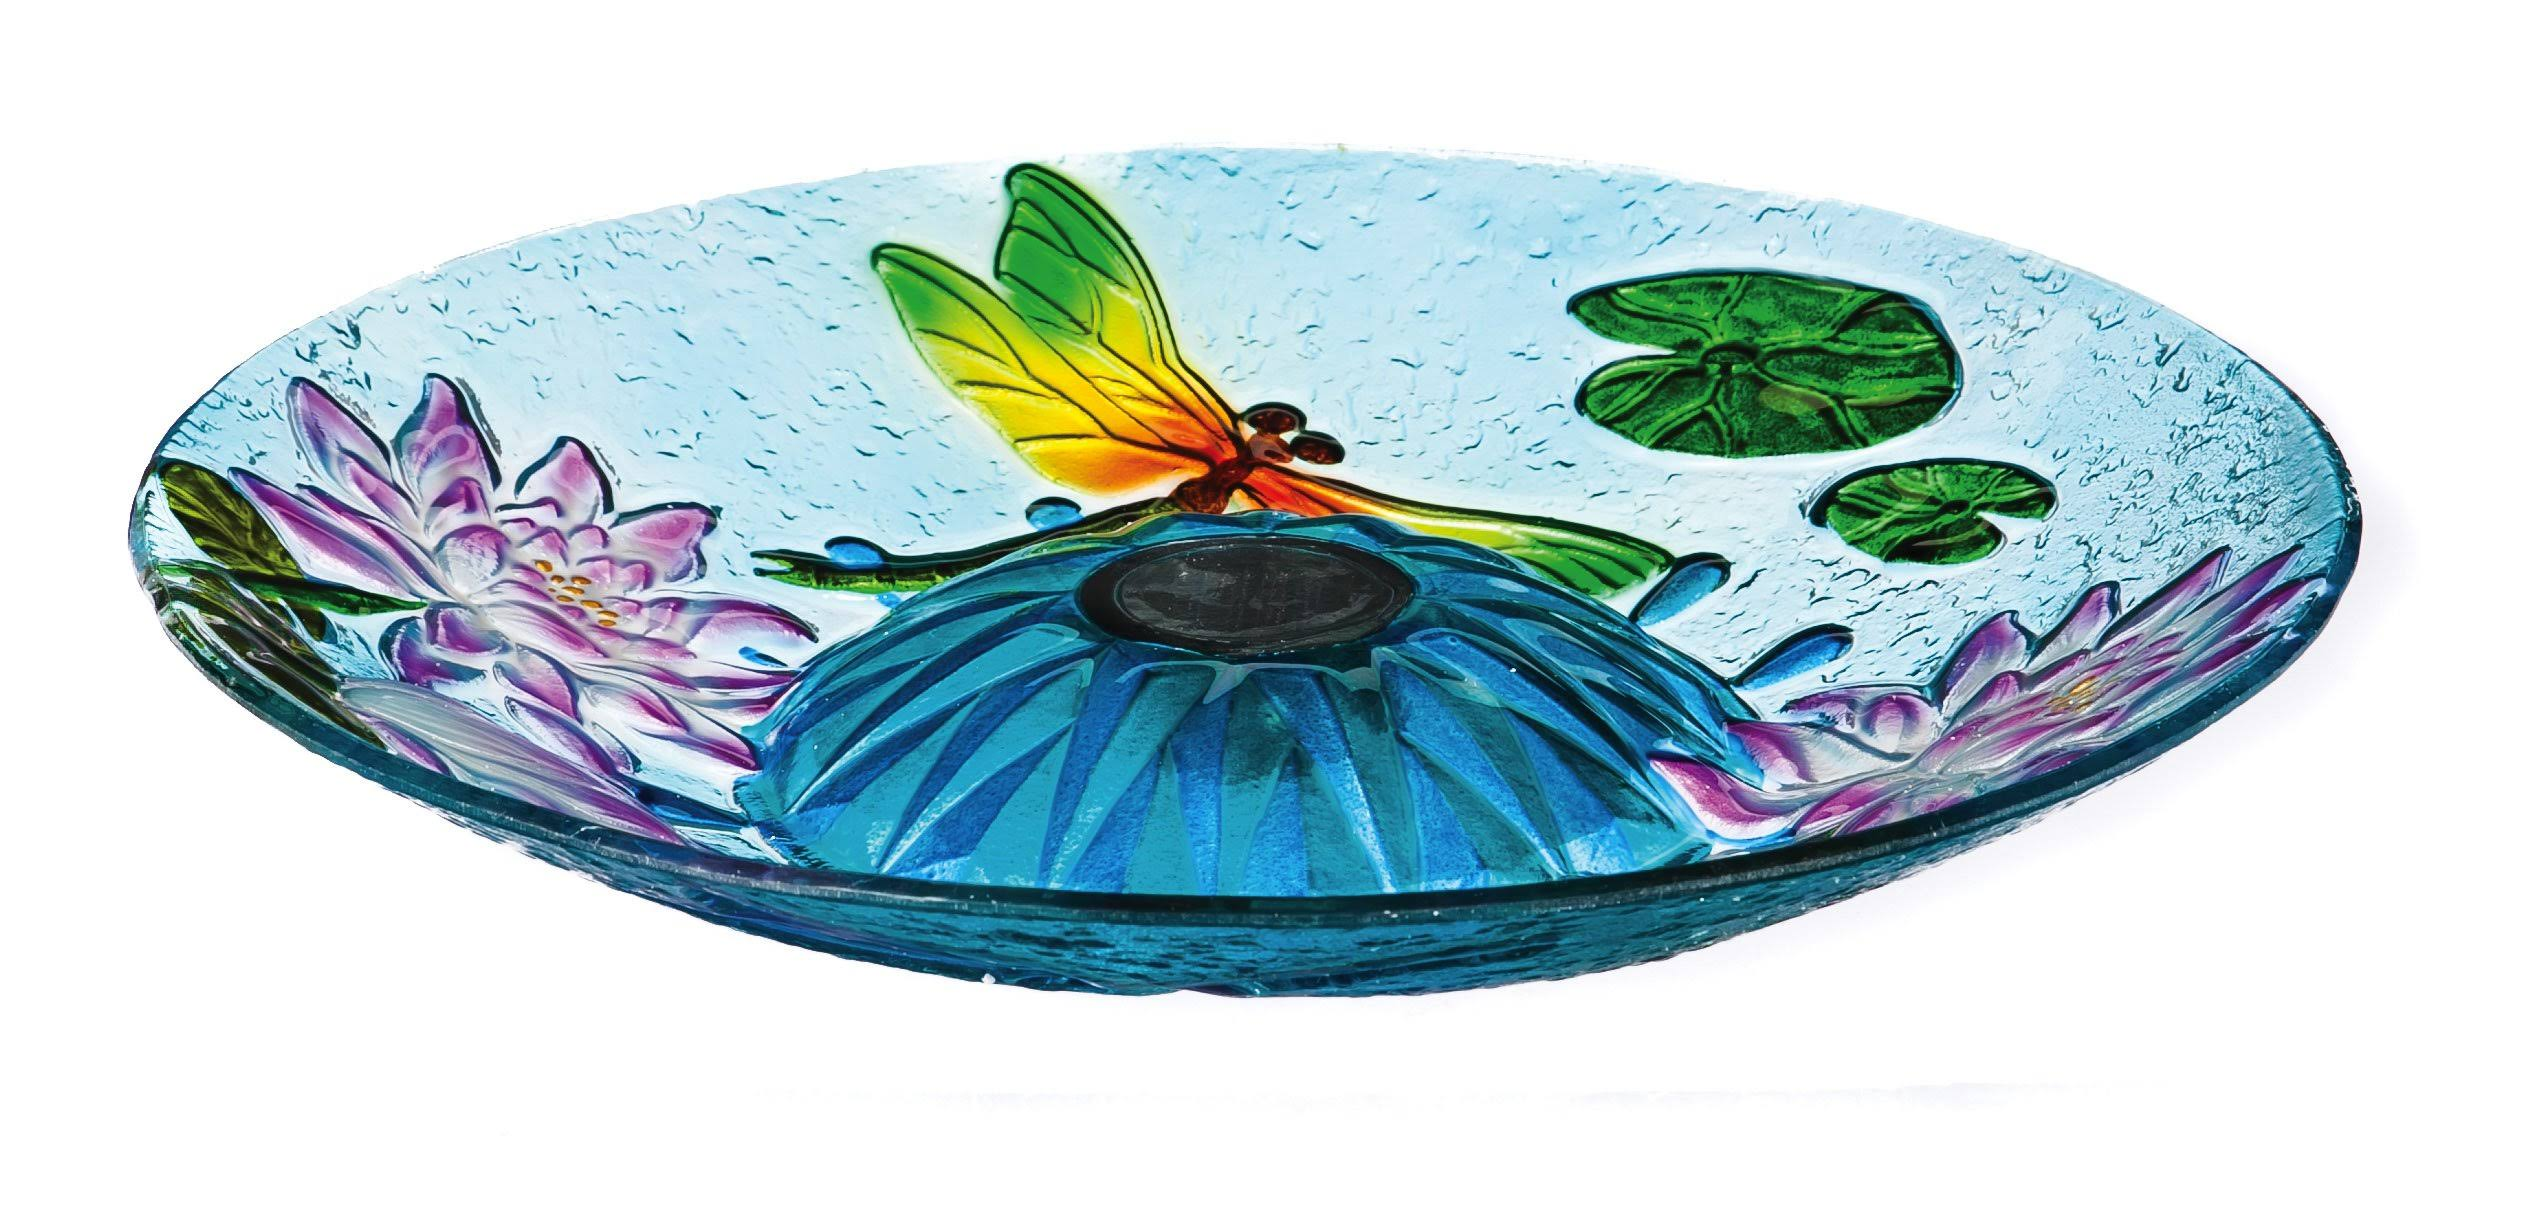 Evergreen 18 in. Dancing Dragonflies Solar Birdbath